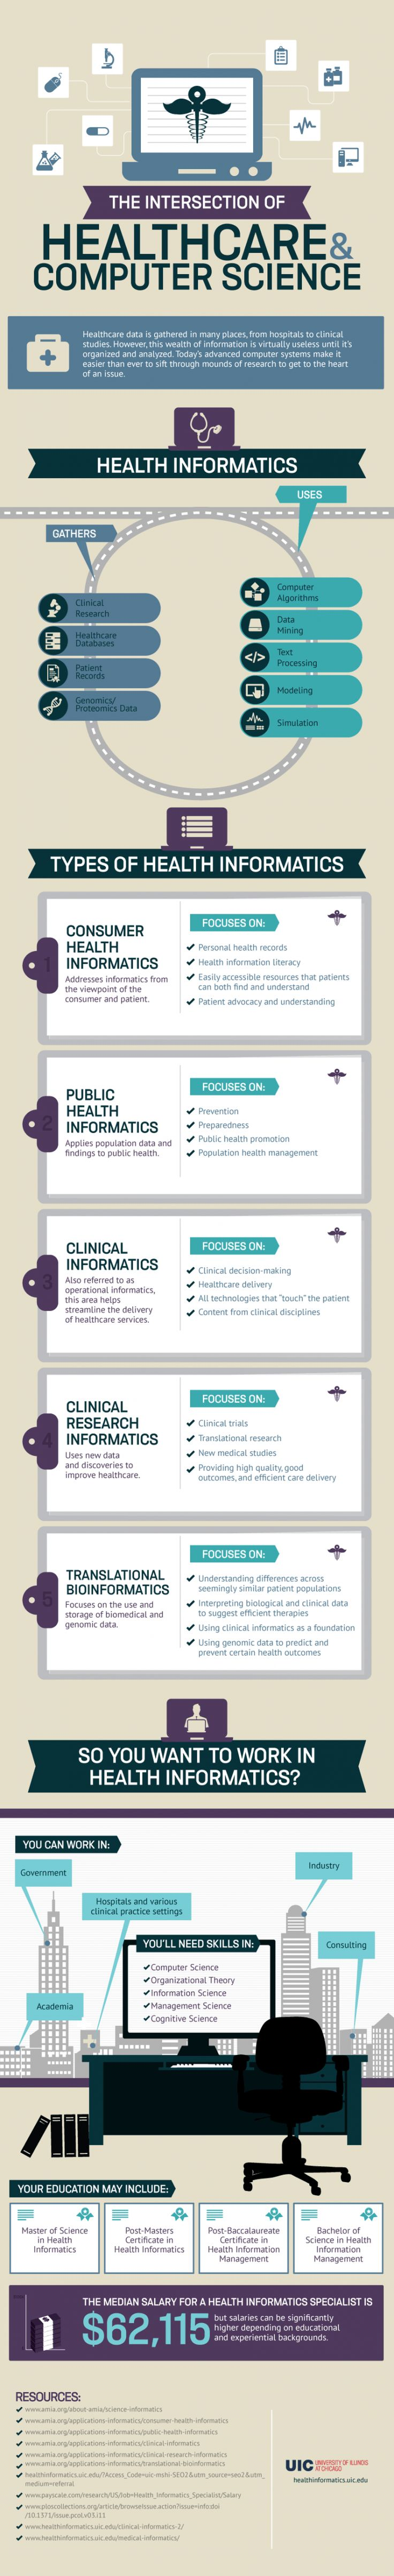 The intersection of healthcare & computer science [infographic]